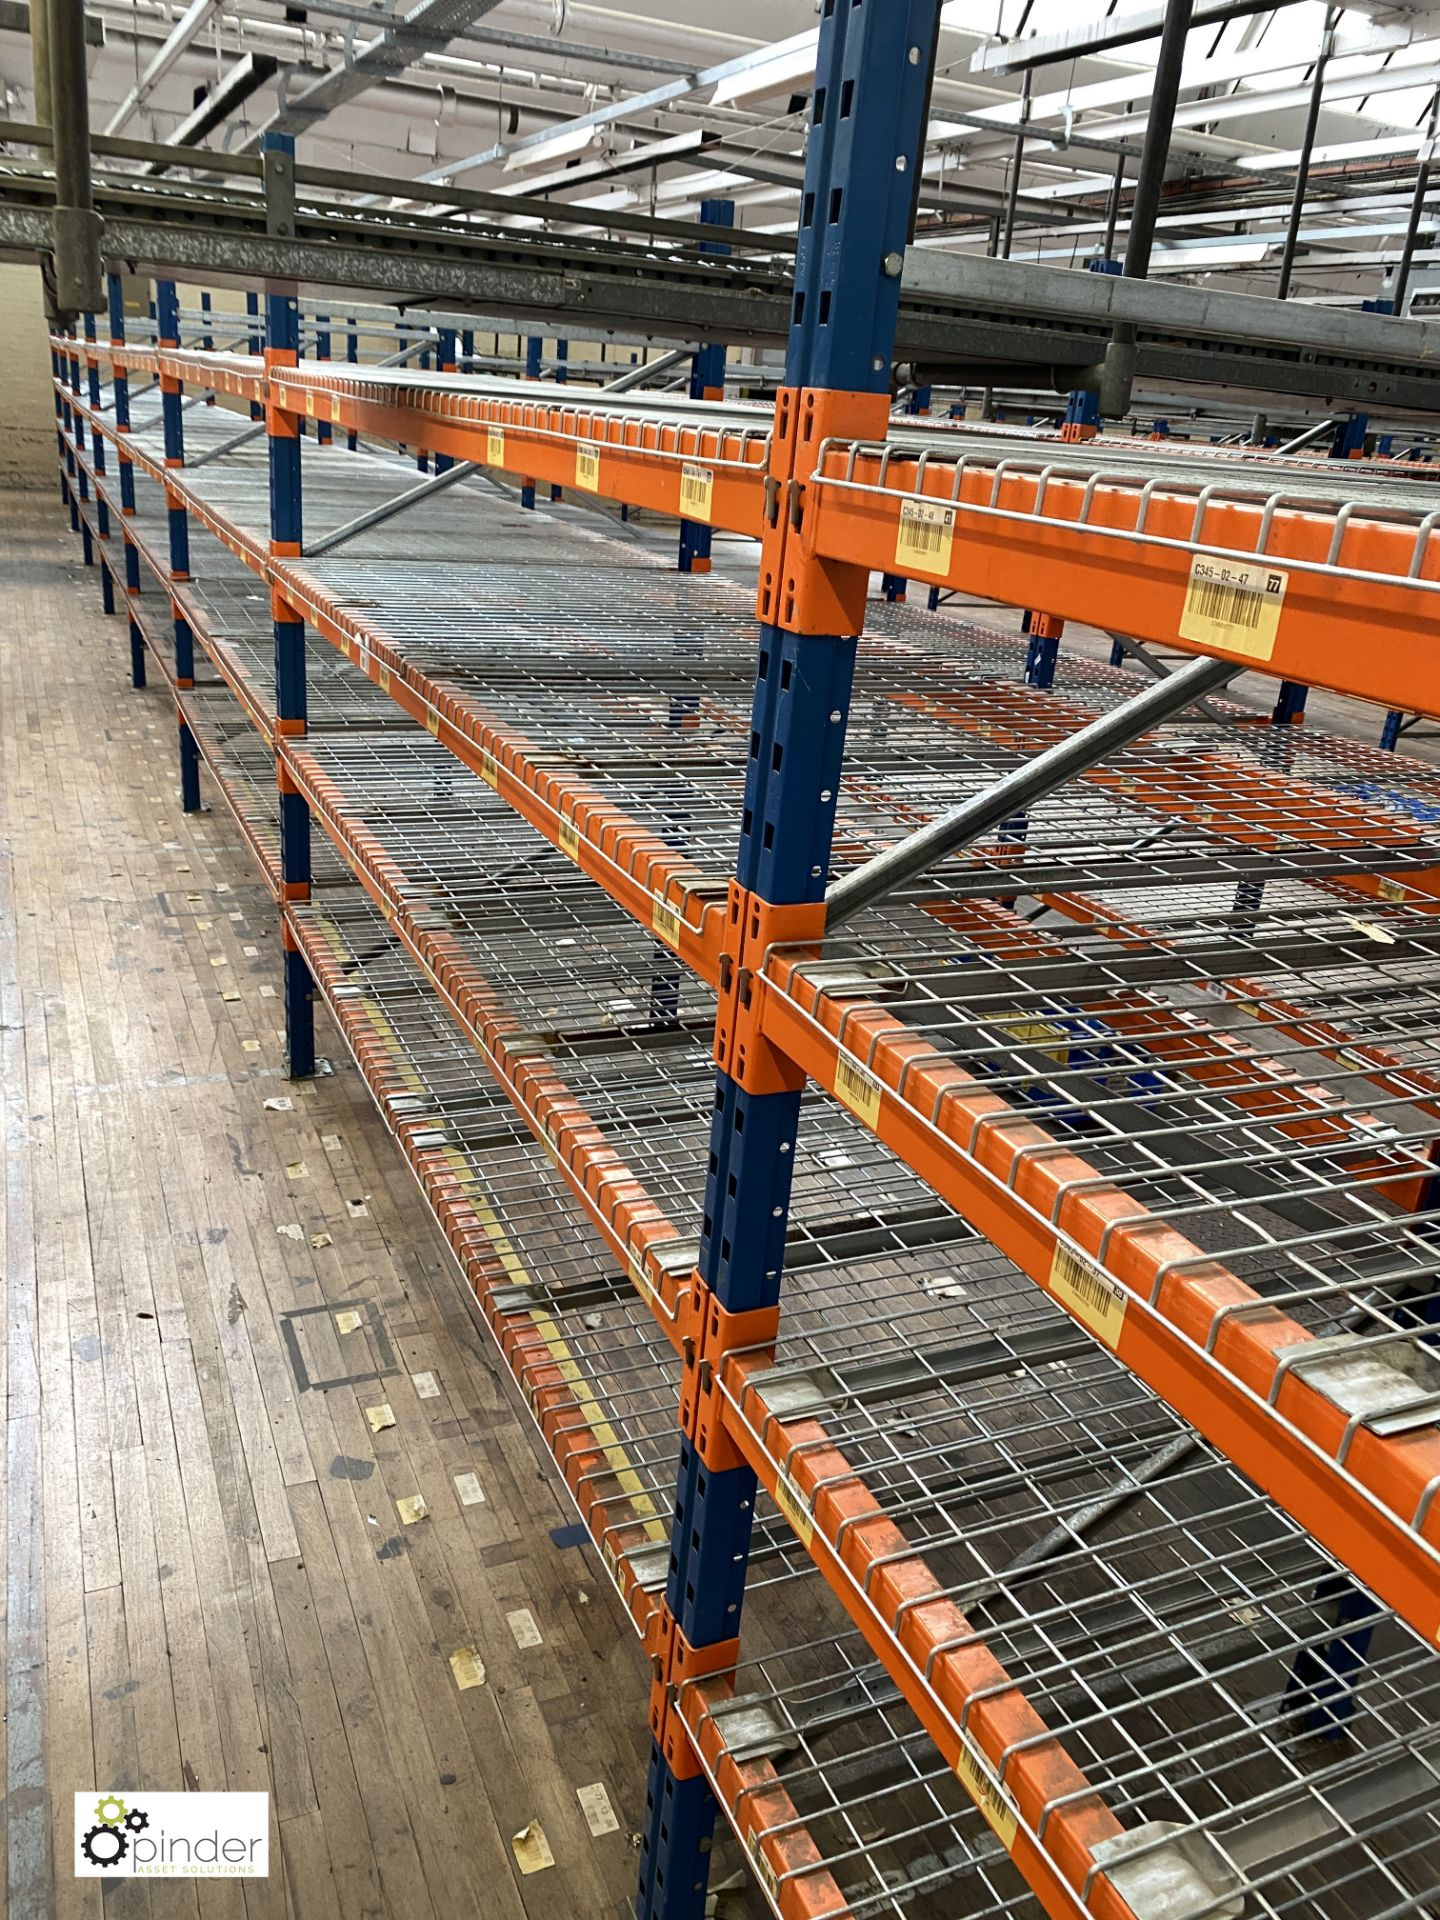 7 bays PSS 2K85 16 boltless Stock Racking, comprising 8 uprights 2400mm x 1200mm, 56 beams 2700mm, - Image 3 of 5